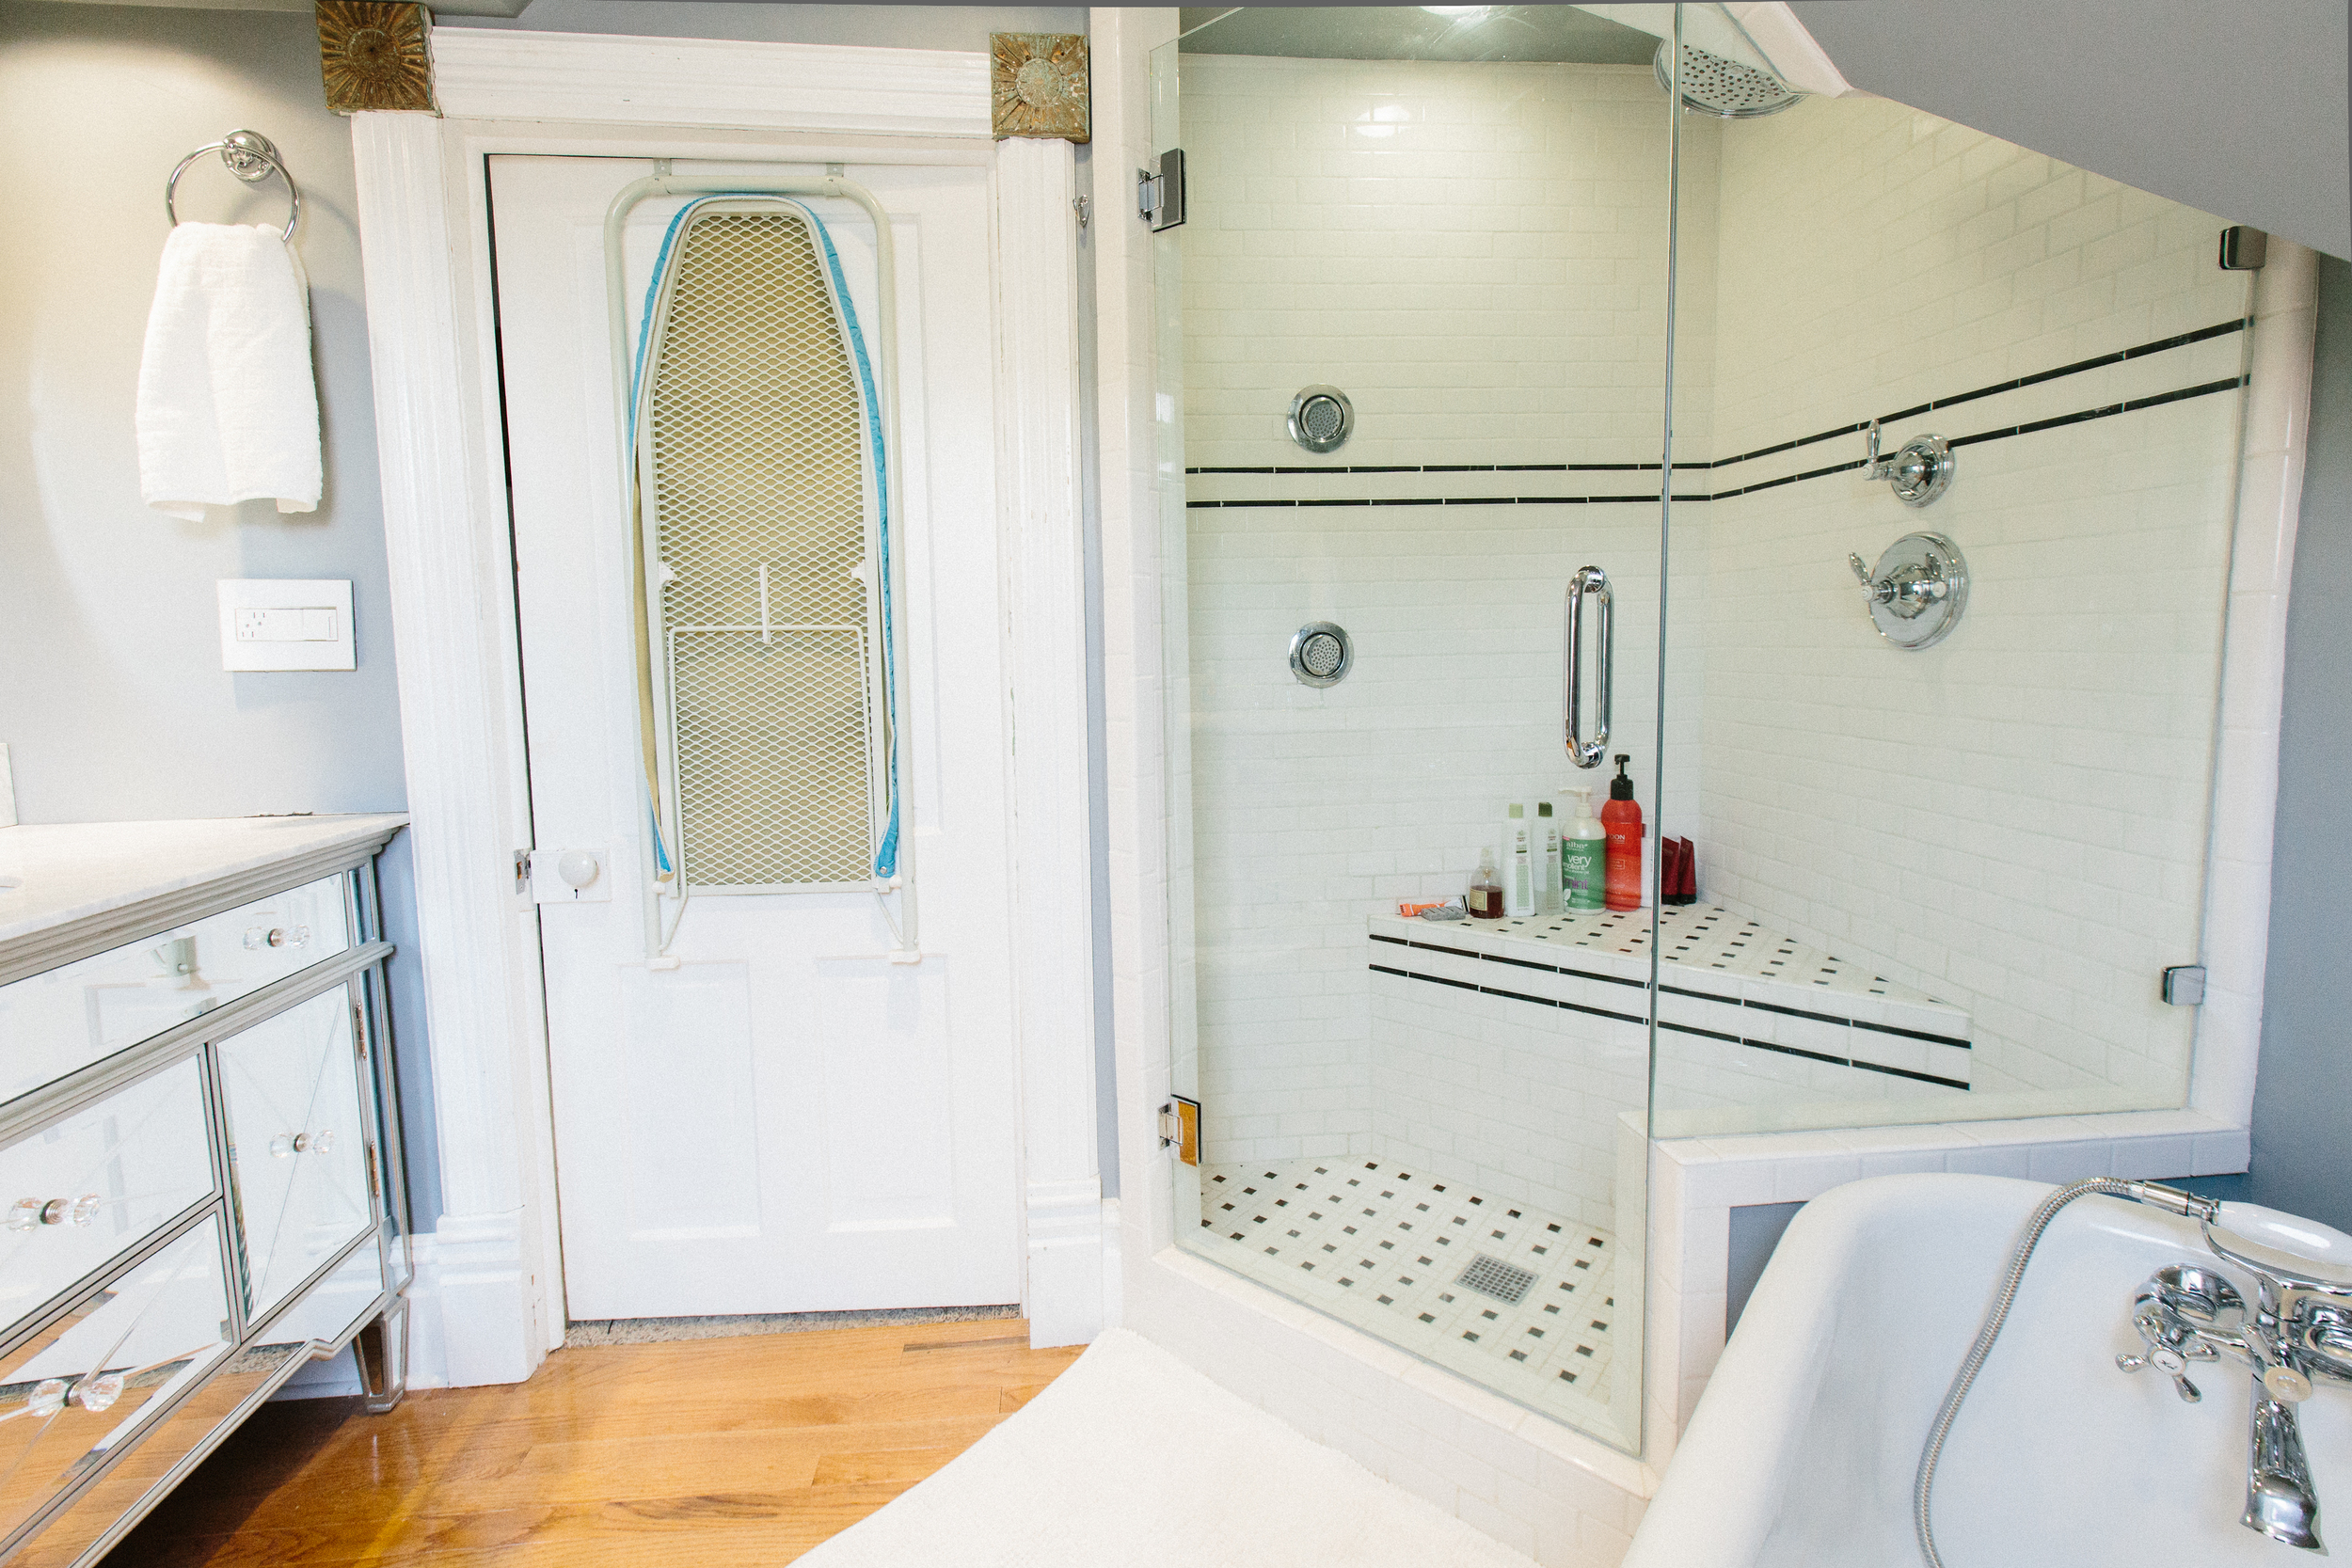 The bath upstairs has been fully remodeled, and includes both a deep clawfoot tub and walk-in shower.